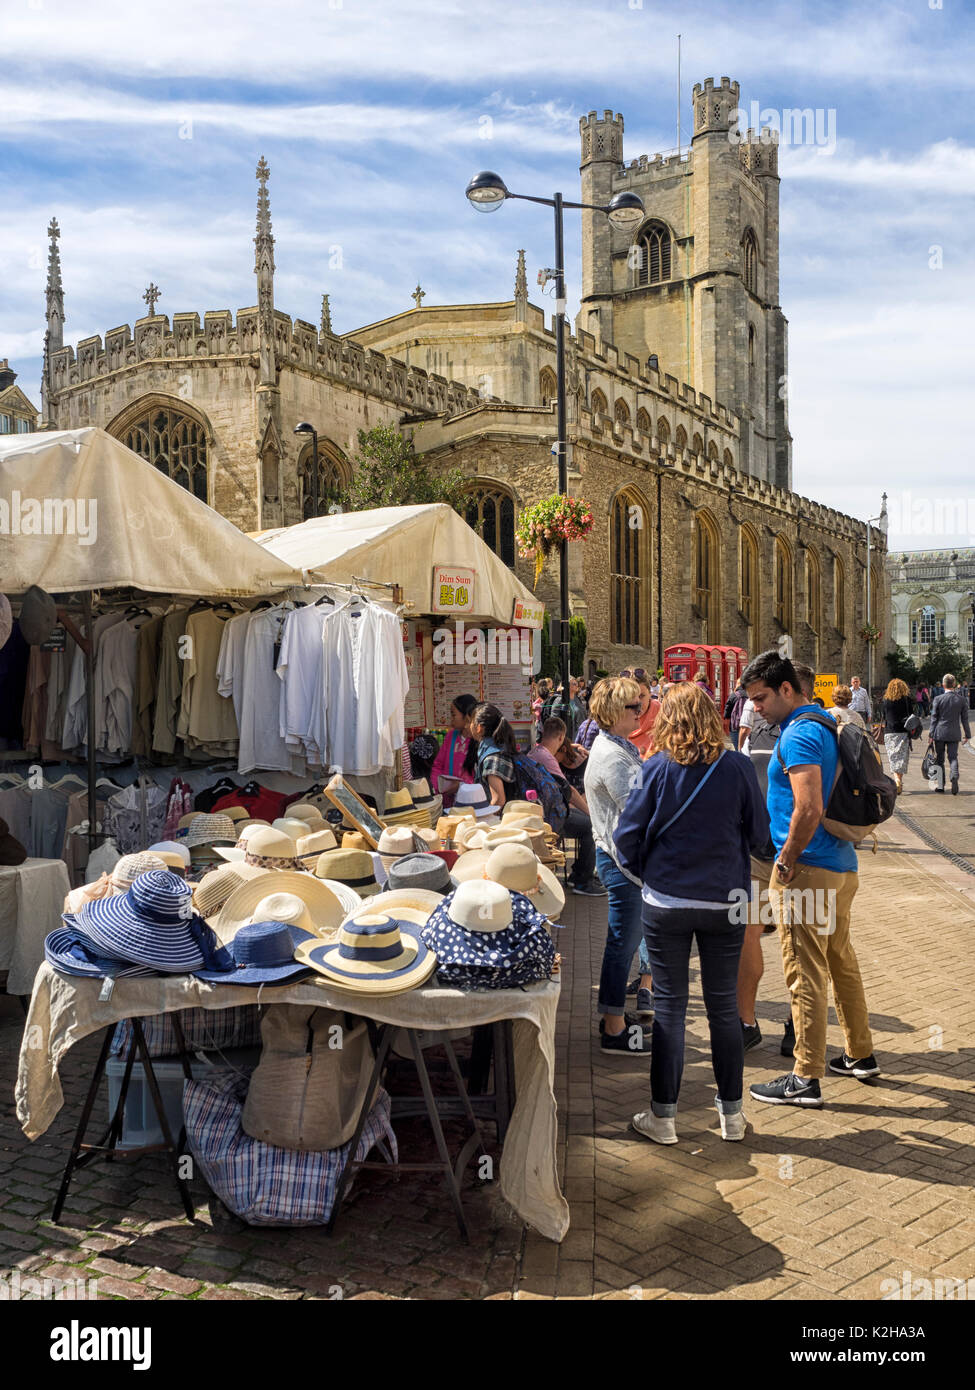 CAMBRIDGE, UK:  The Historic Market in Market Square overlooked by Great St Mary's Church - Stock Image